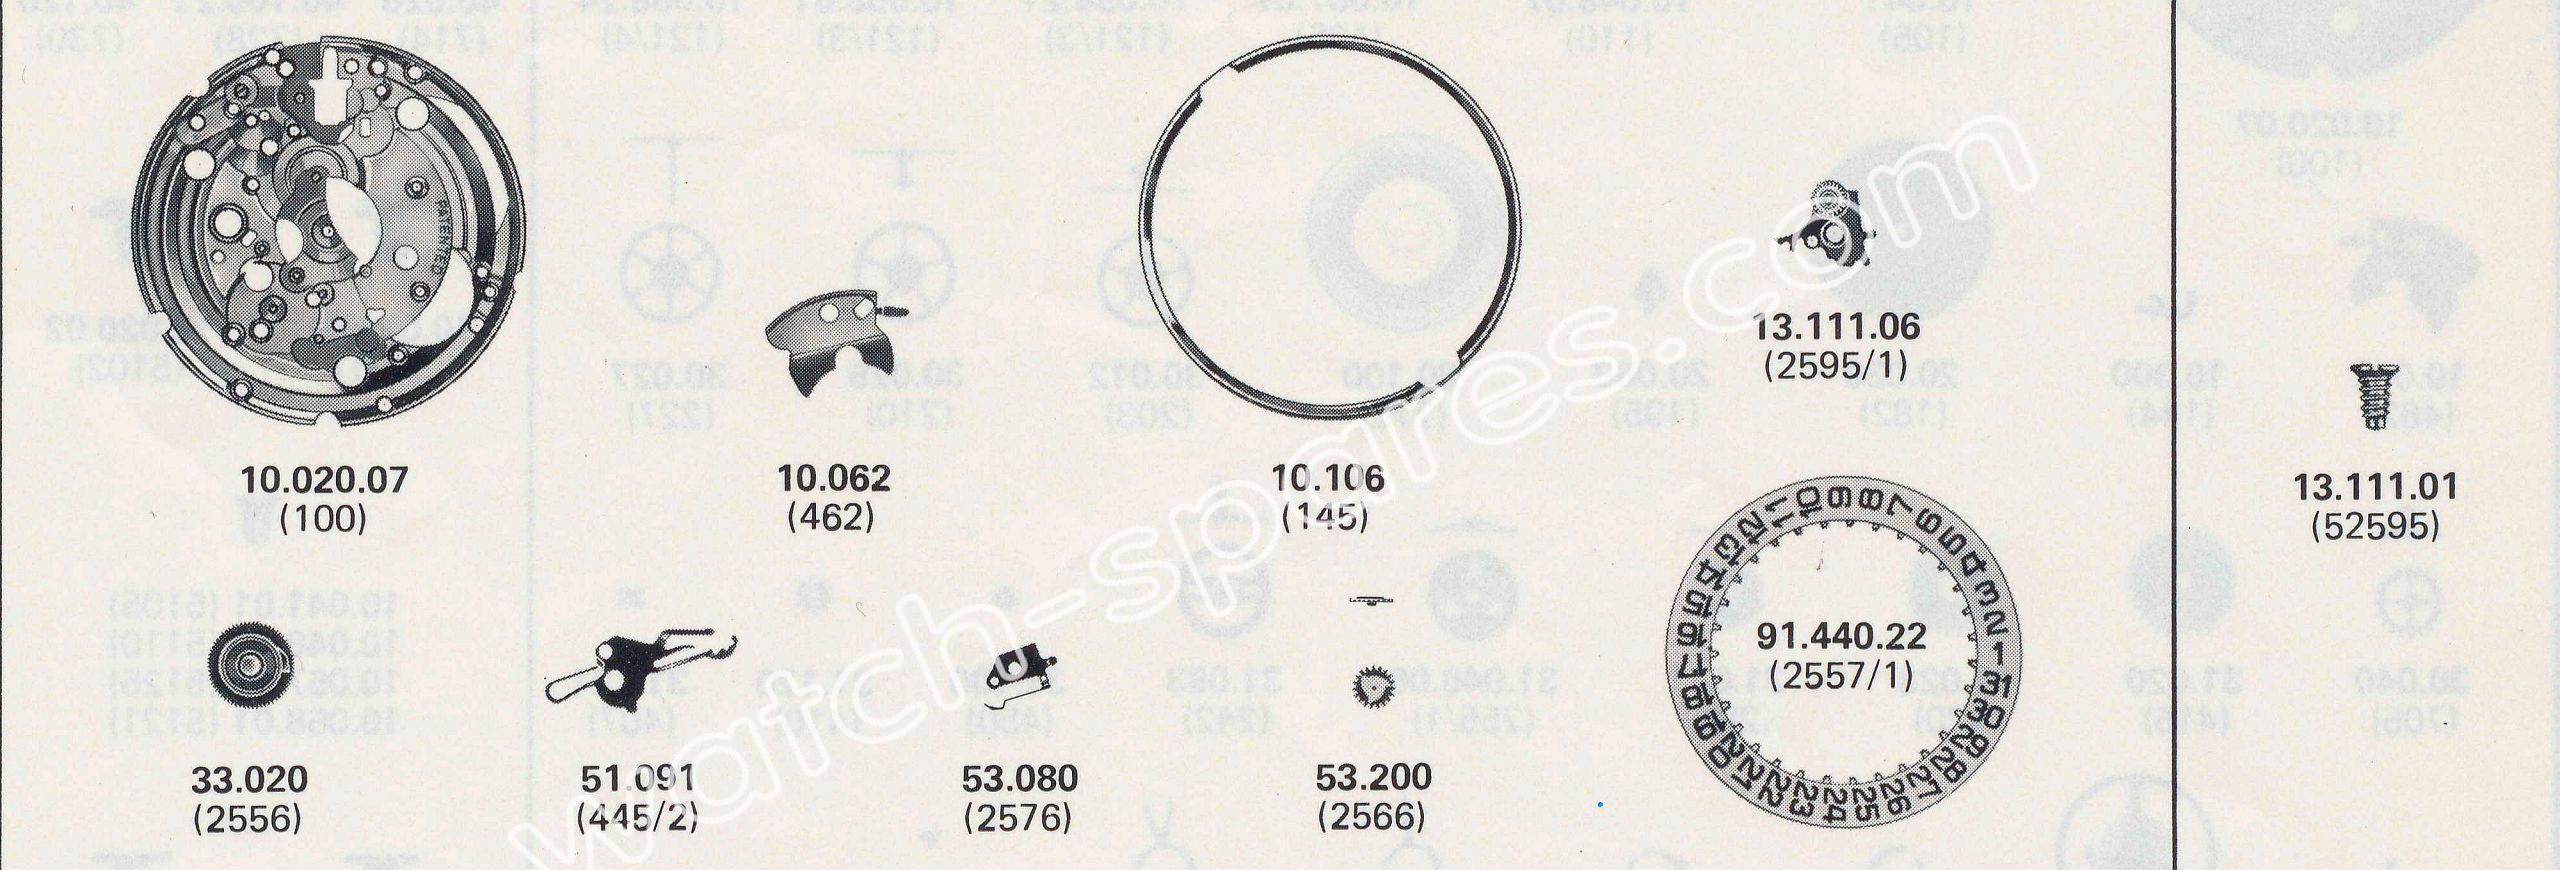 ETA 2804.1 watch date spare parts